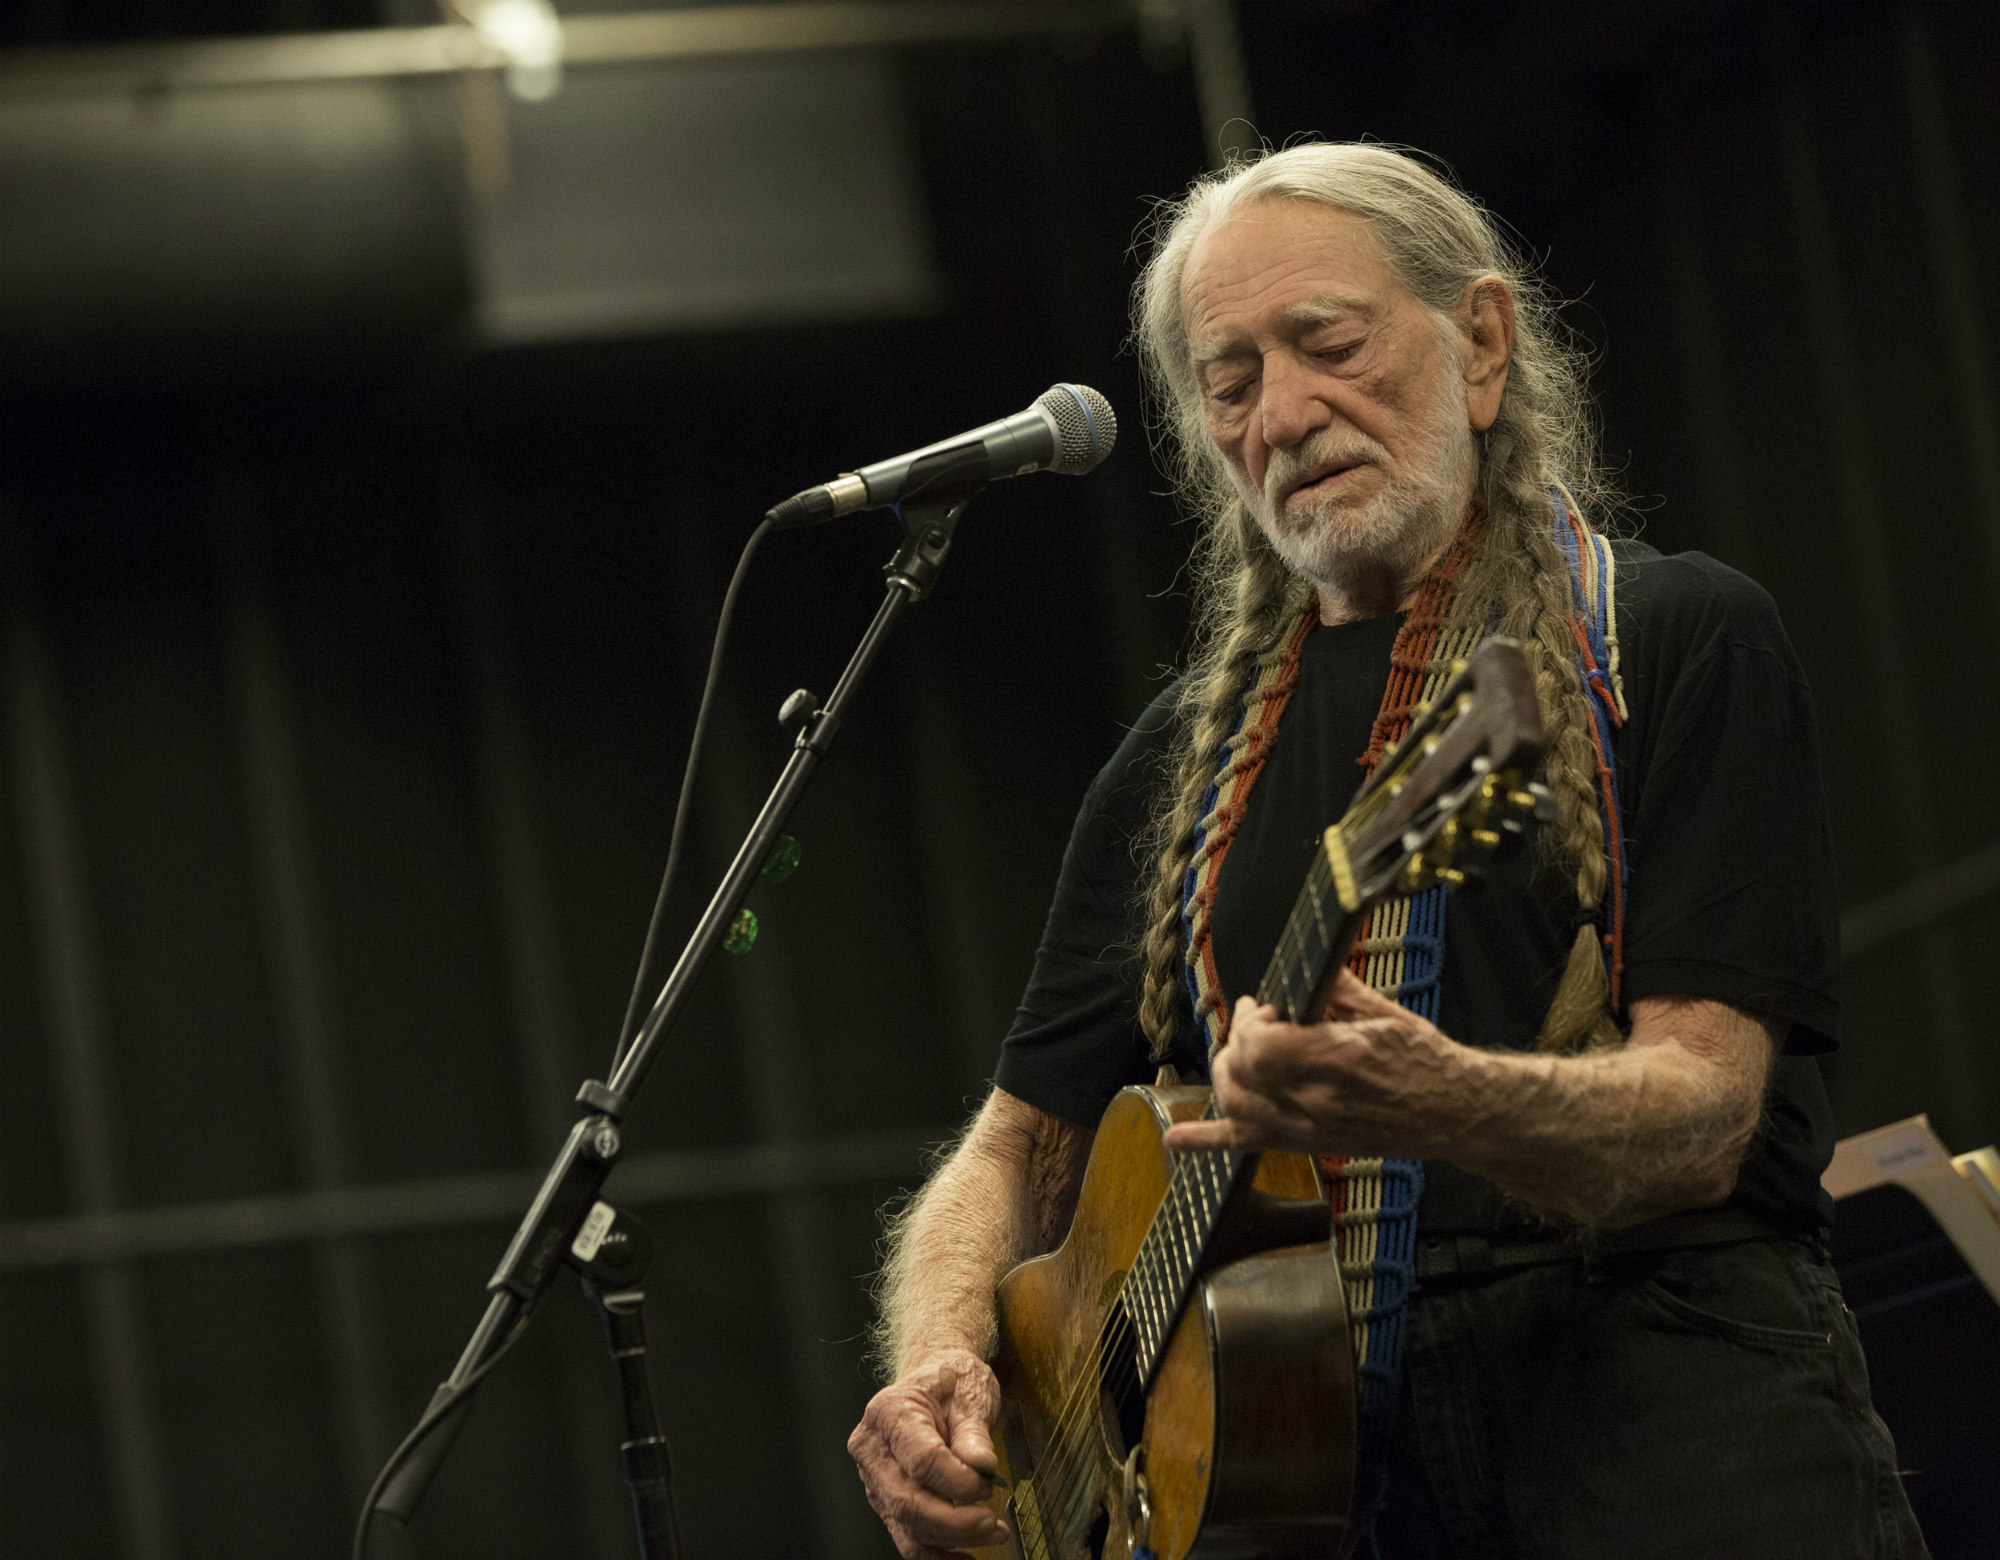 Willie Nelson / Photo by James Minchin / Courtesy of Shock Ink